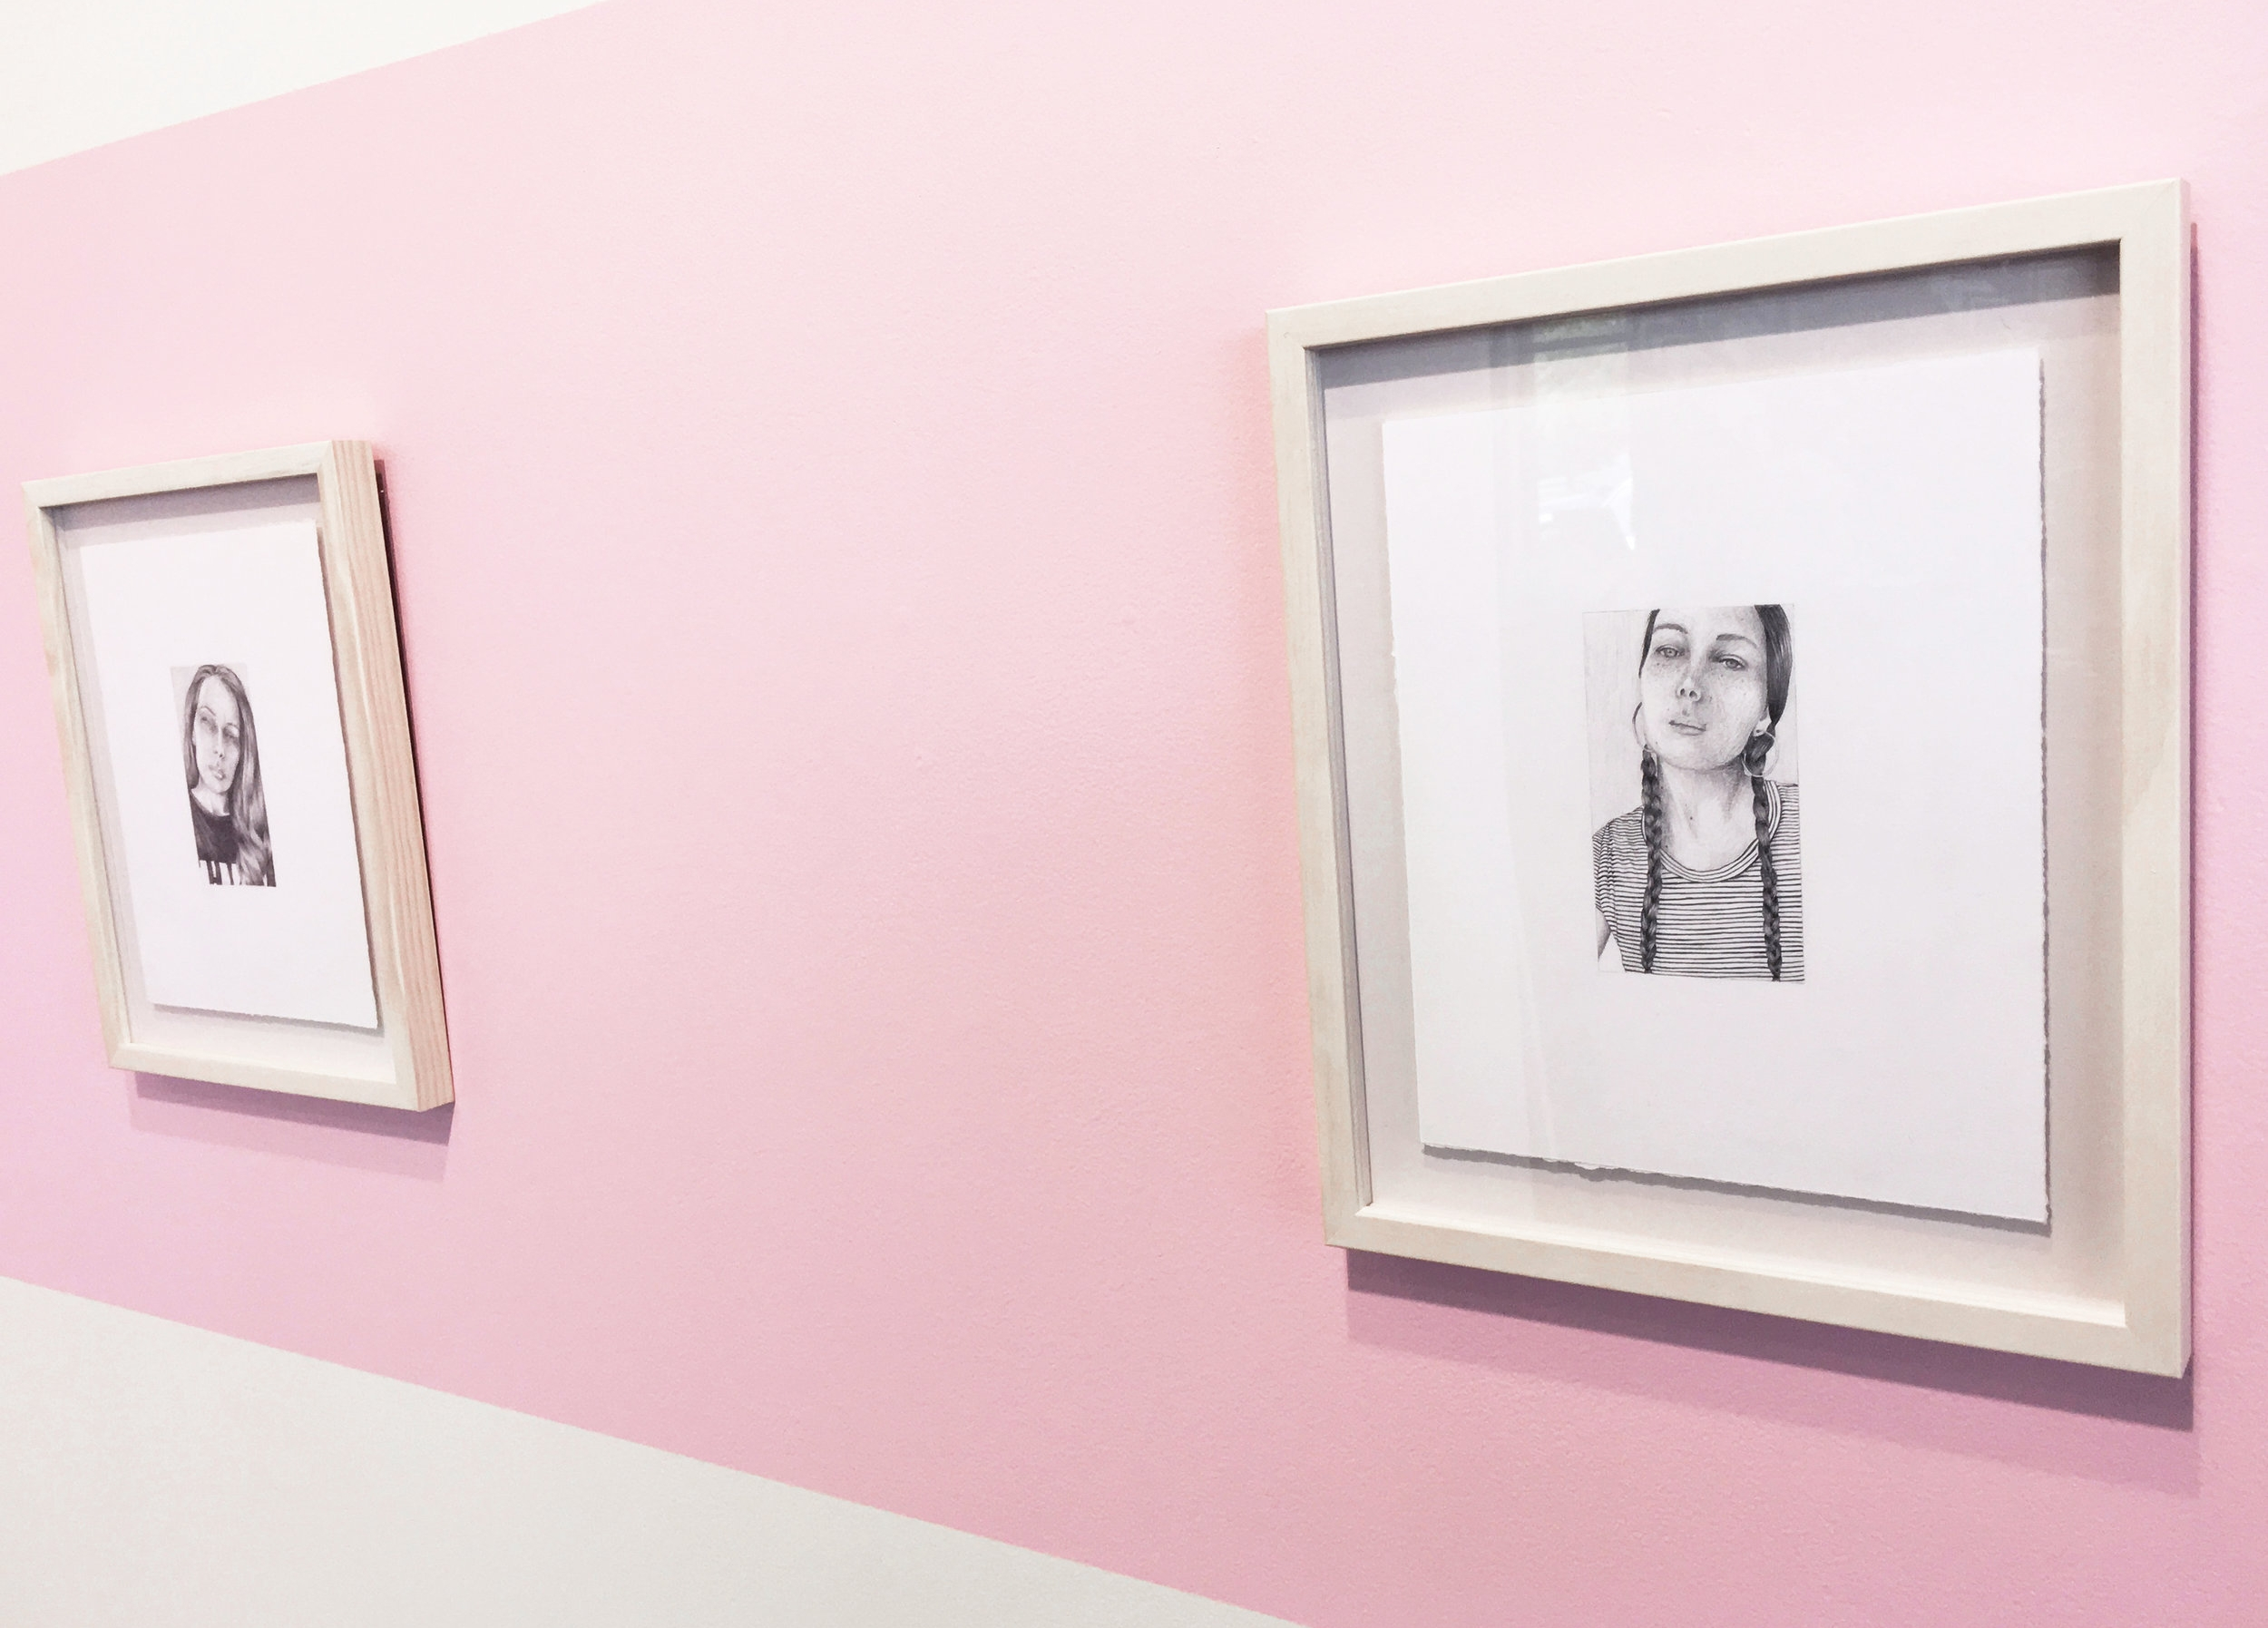 Installation View, The Framing Workshop.